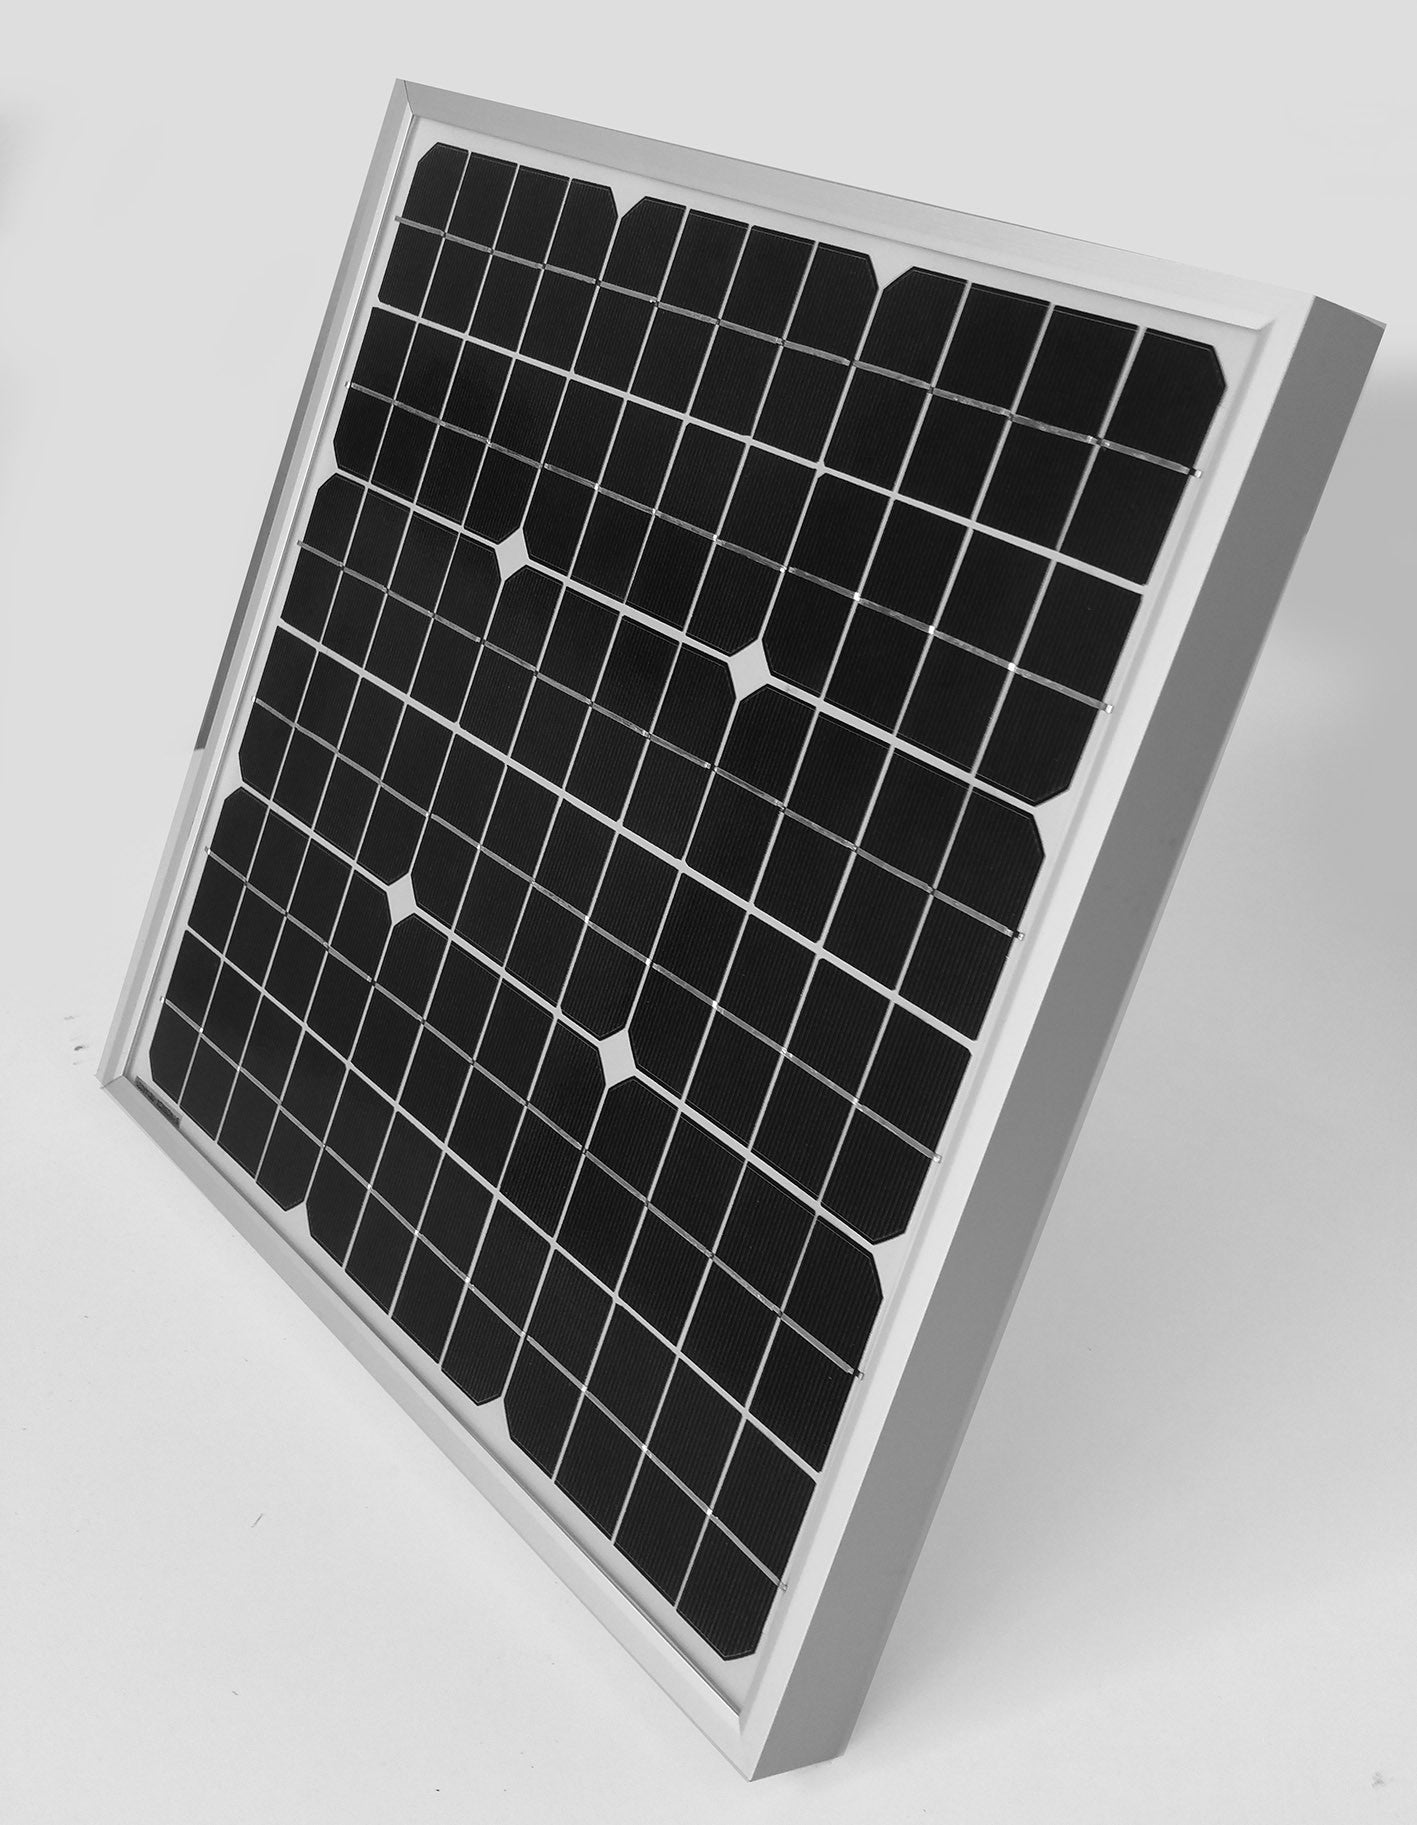 Solar Panels Diagram Installation Driveway Gate Ducati Powered Swing Opener Sw7000t U2013